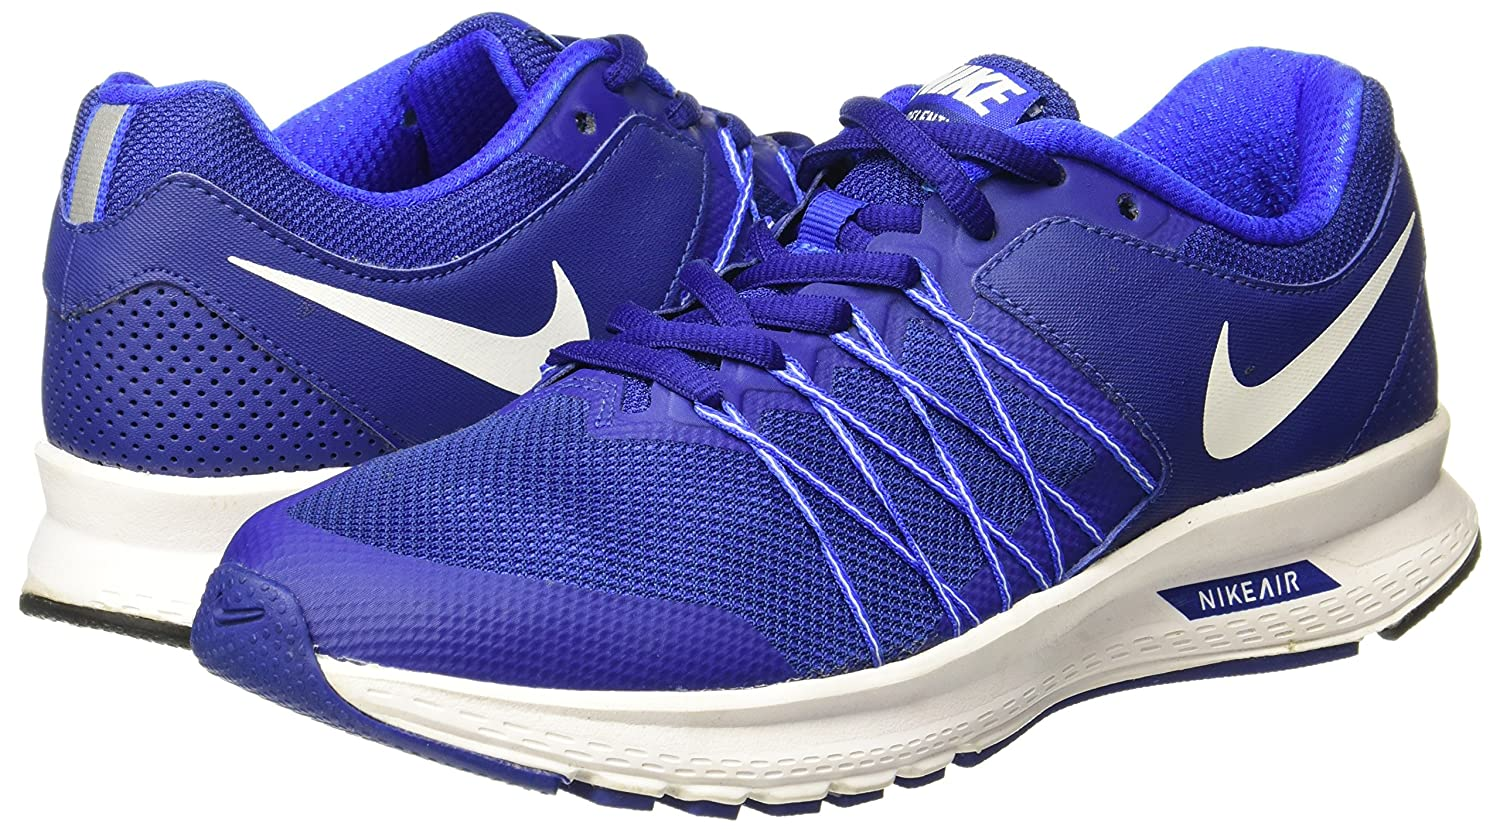 a5e5aee80e511 Nike Men s Air Relentless 6 MSL Running Shoes  Buy Online at Low Prices in  India - Amazon.in